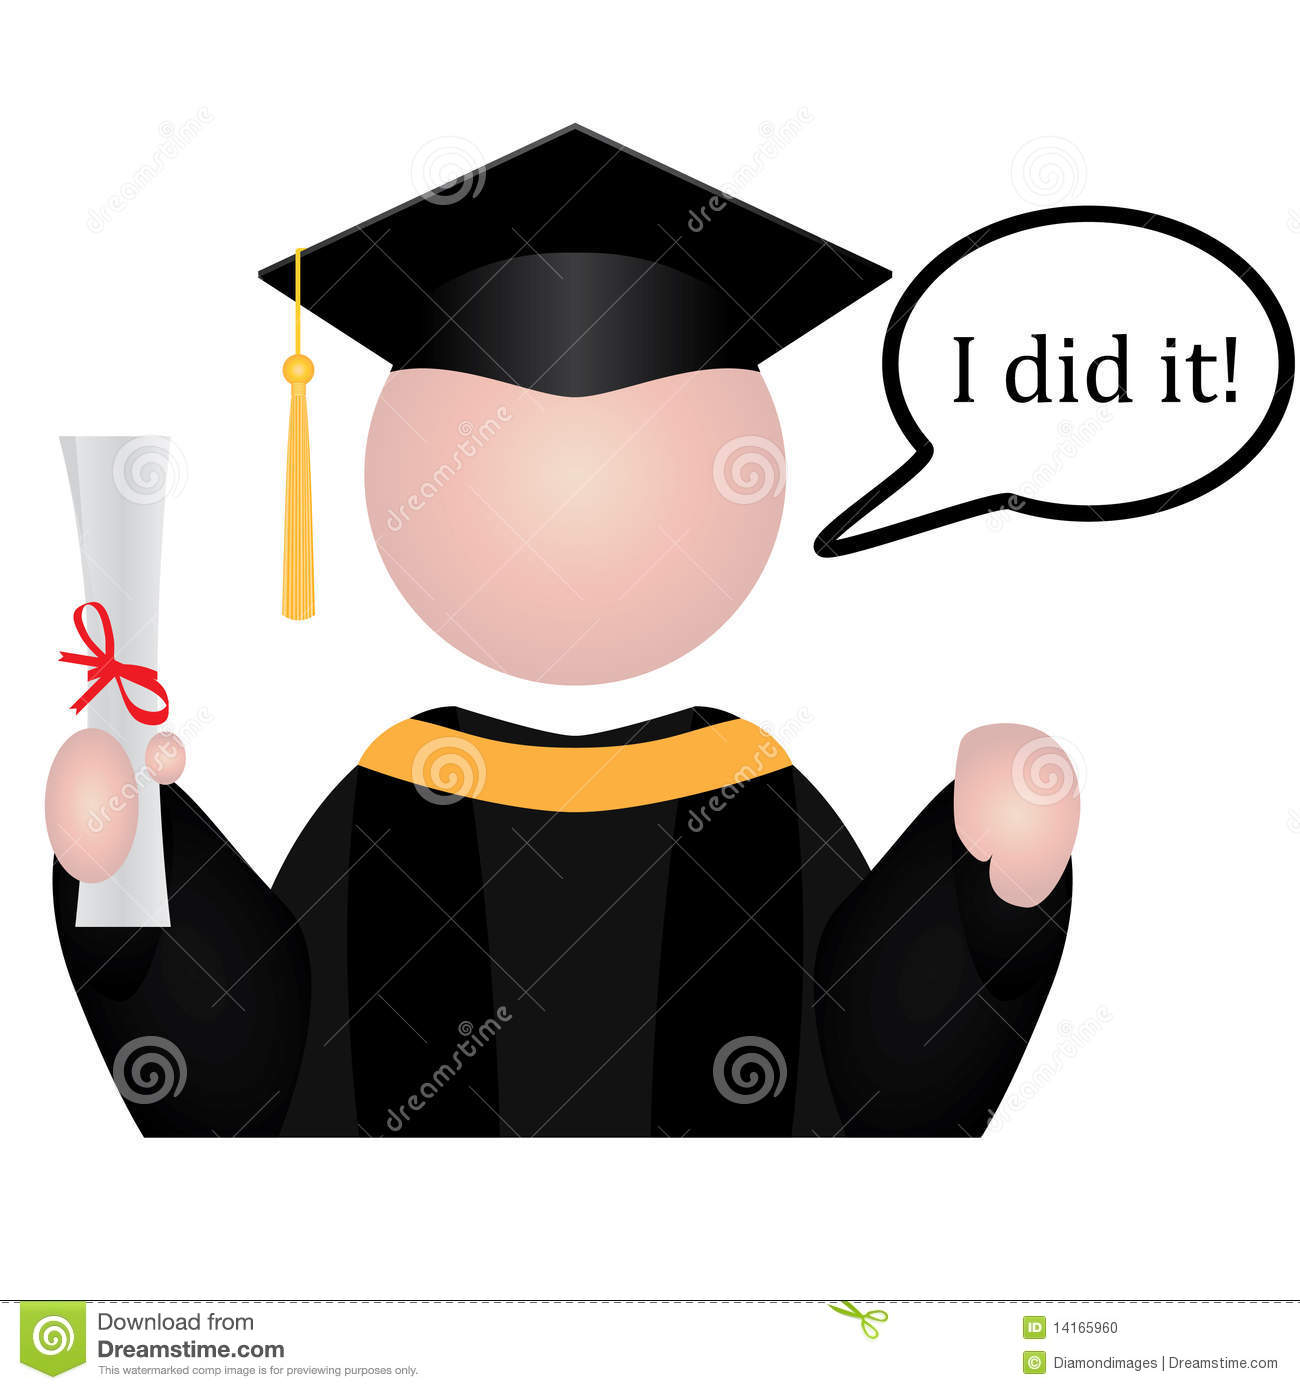 Graduation student icon with speech bubble saying I did it!